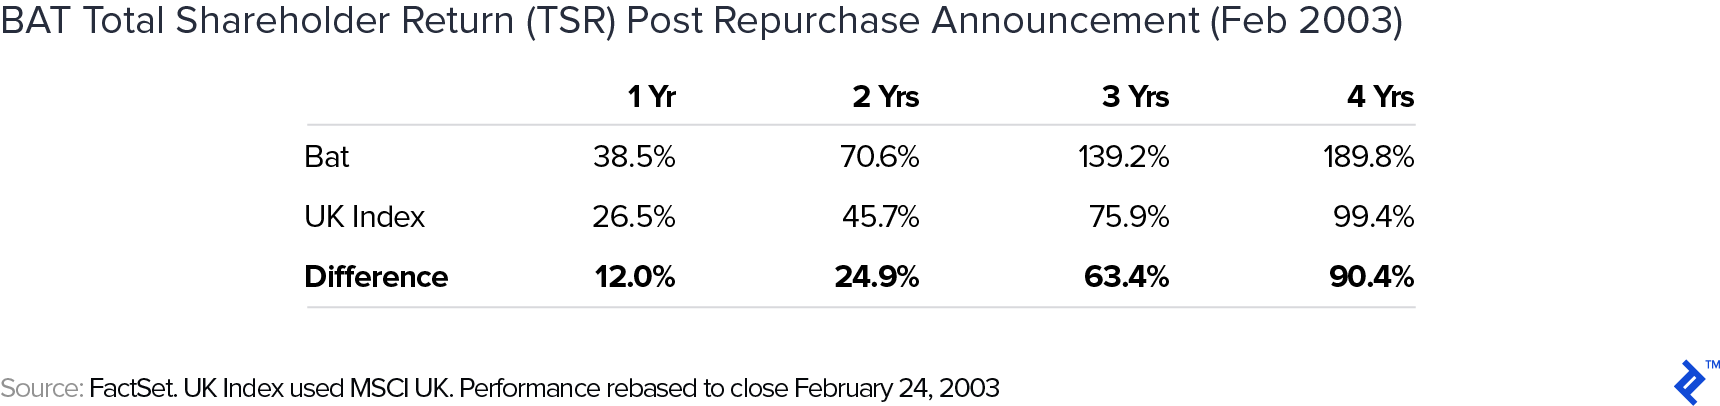 BAT total shareholder return post repurchase announcement in February of 2003